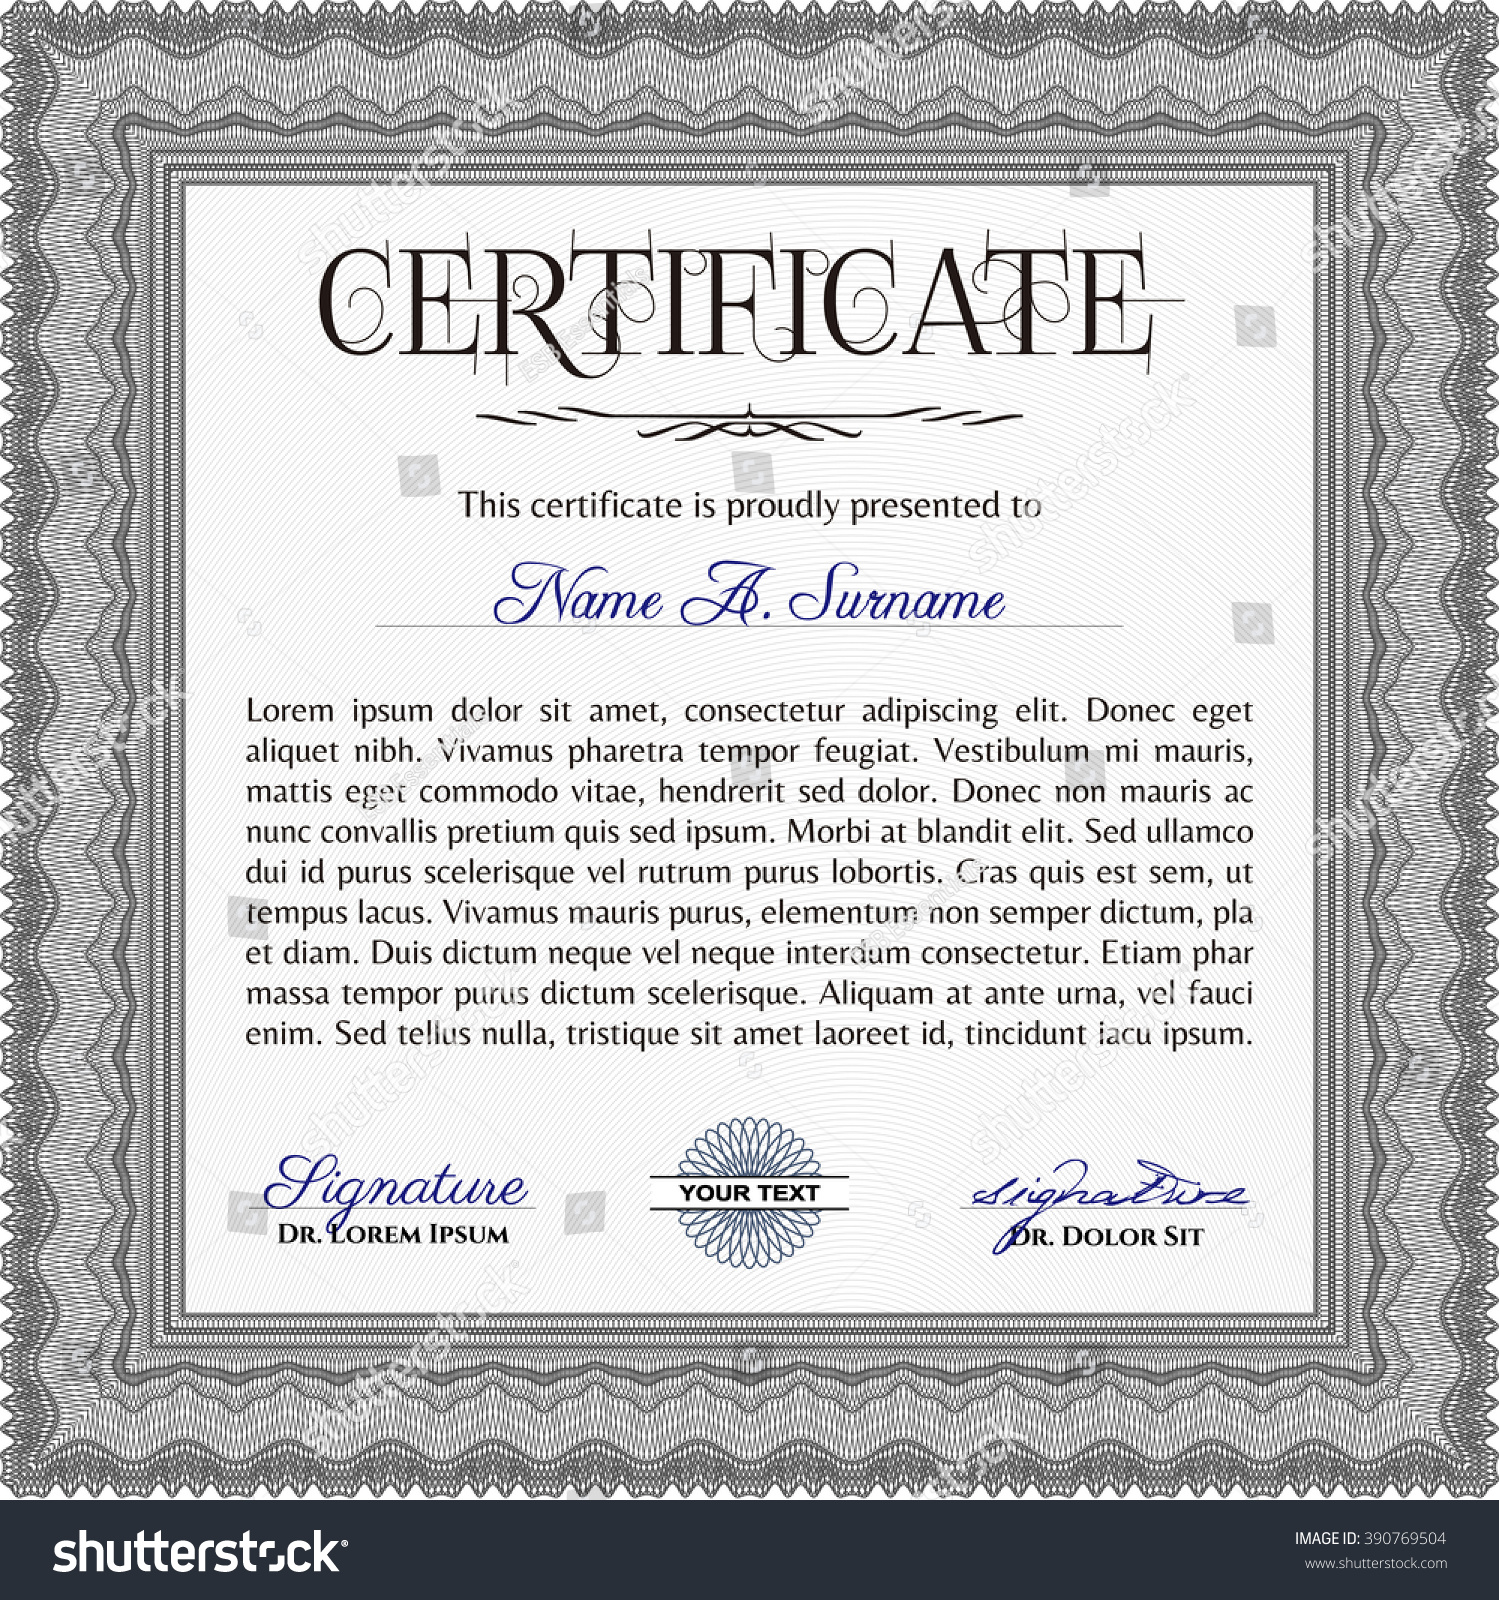 Basketball certificate templates images templates example free business certificate templates kids sports certificate microsoft business certificate templates basketball certificate template stock vector grey yadclub Choice Image